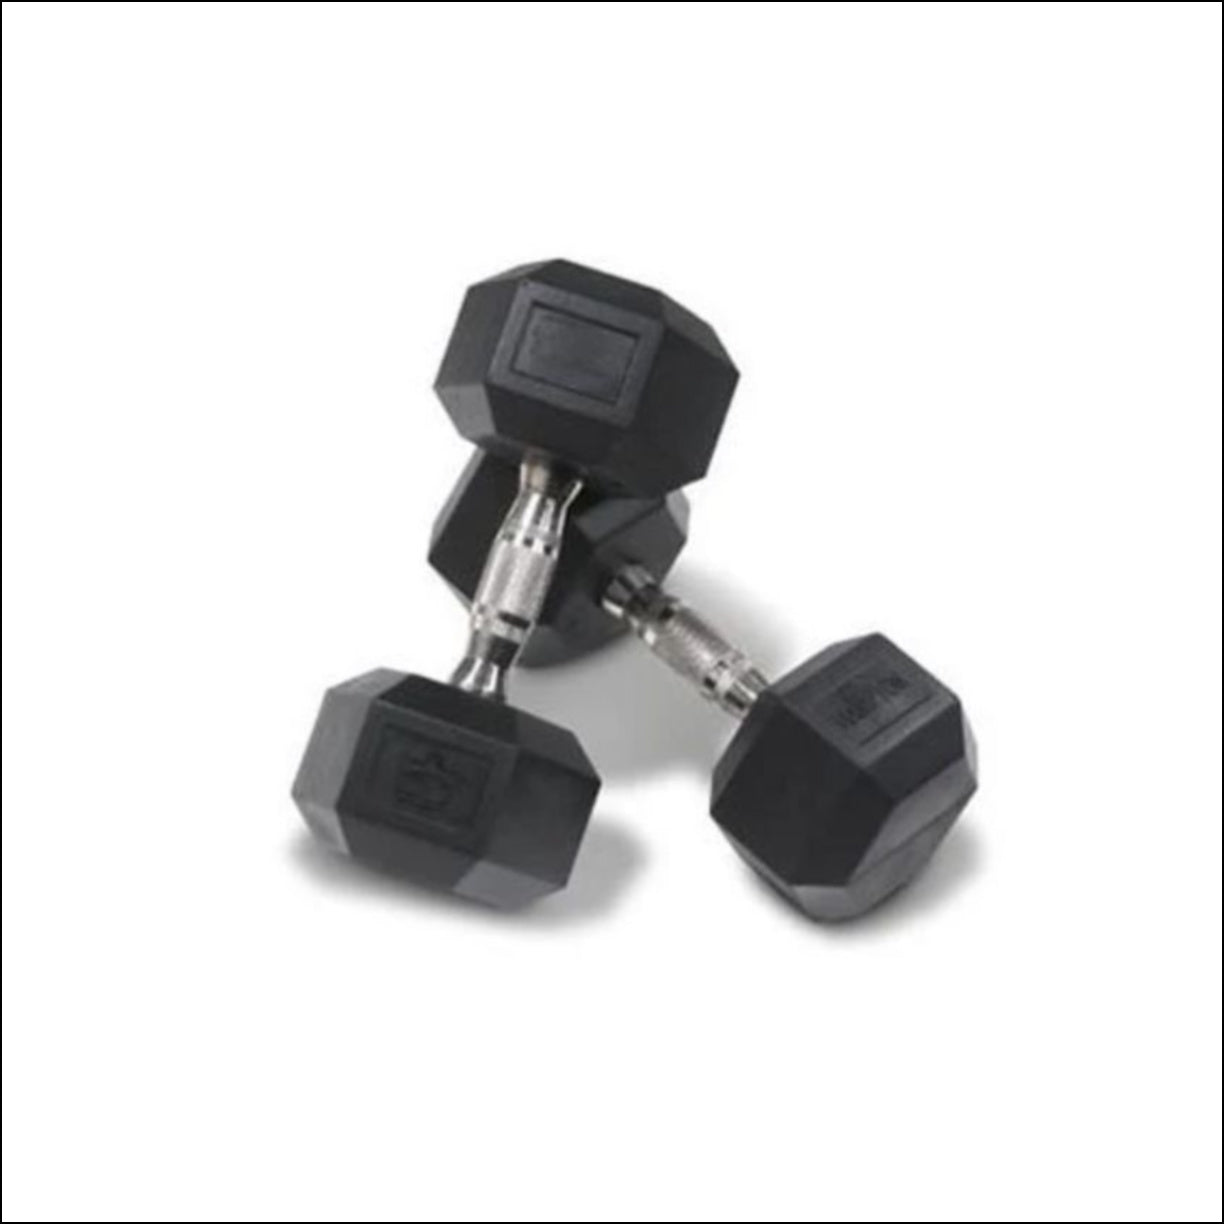 PAIR OF 40-KG RUBBER HEX DUMBBELLS  Muscle Motion Rubber coated hexagonal dumbbells with ergonomic handles are designed for increased comfort and improved durability. Rubber coating reduces noise improves life cycle of the product  (other finishes such as chrome and cast iron are subject to chipping and rust). Rubber coated dumbbells are also kinder on floor surfaces. The hexagonal shaped ends are designed to prevent the dumbbell from rolling on the floor or dumbbell rack.